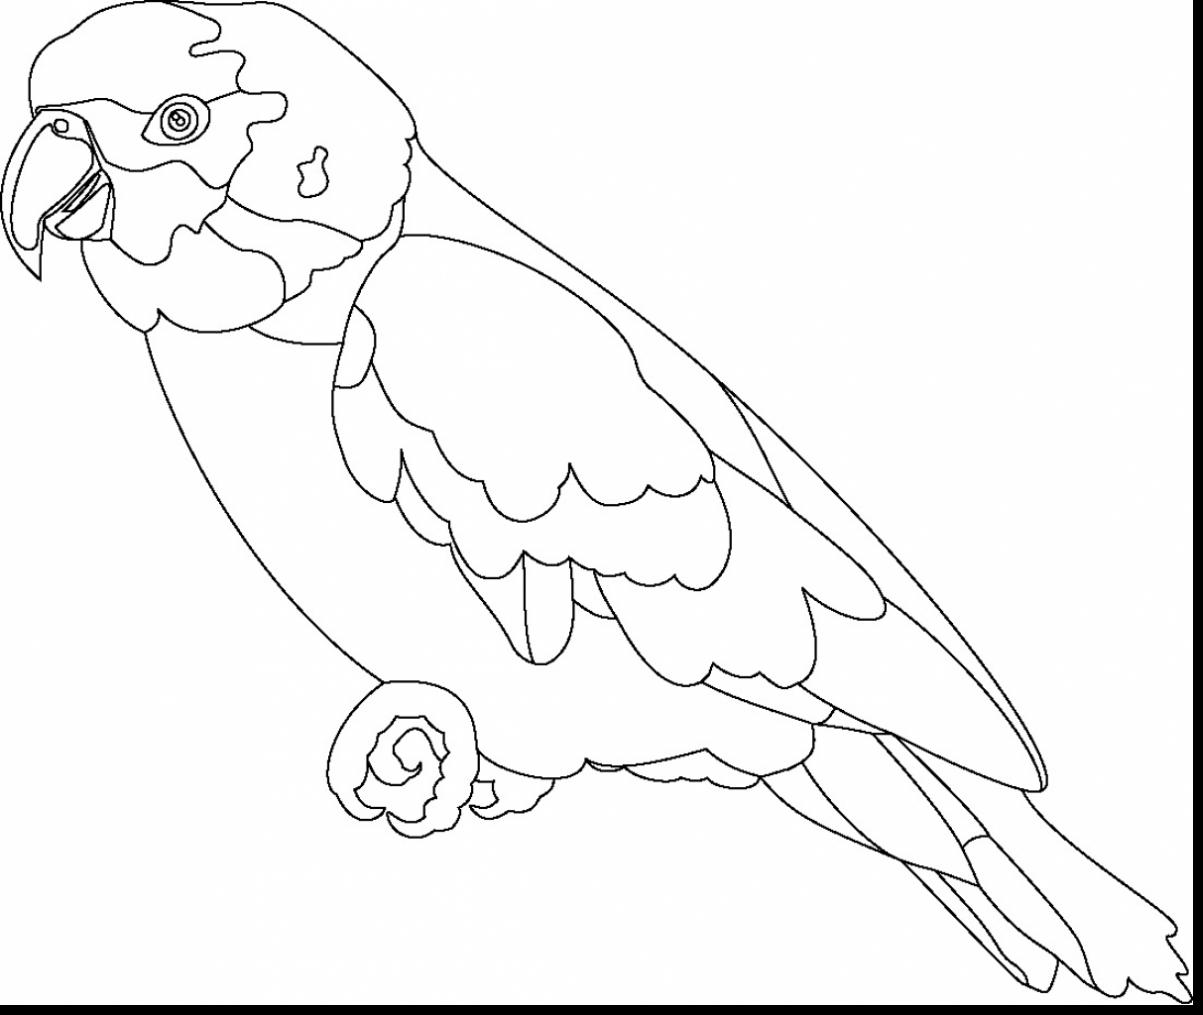 1203x1015 Fabulous Parrot Outline Coloring Page With Parrot Coloring Page